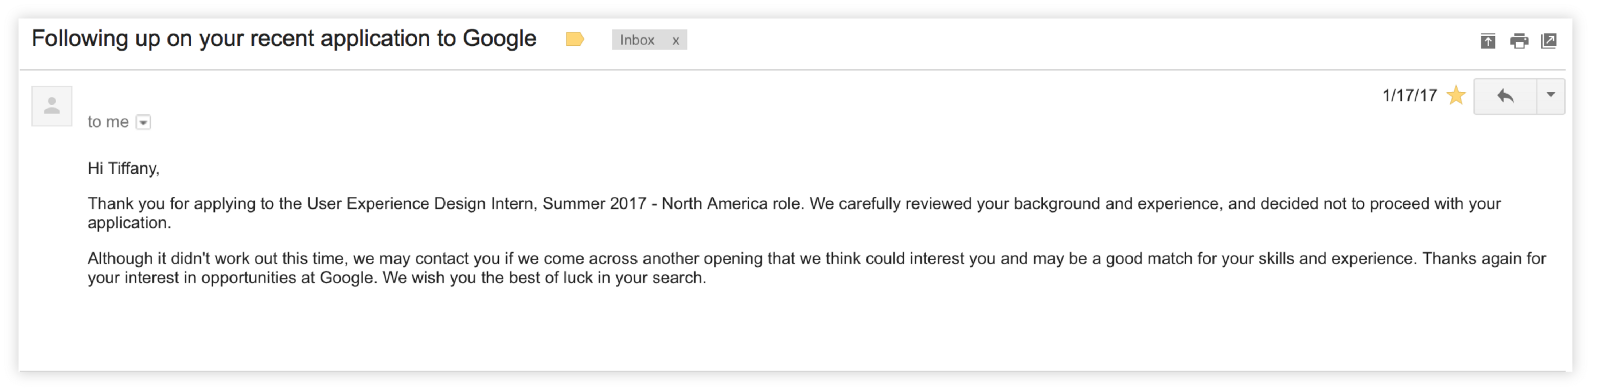 a few months later i applied for a different google internship opportunity and i got an e mail about the first interview round